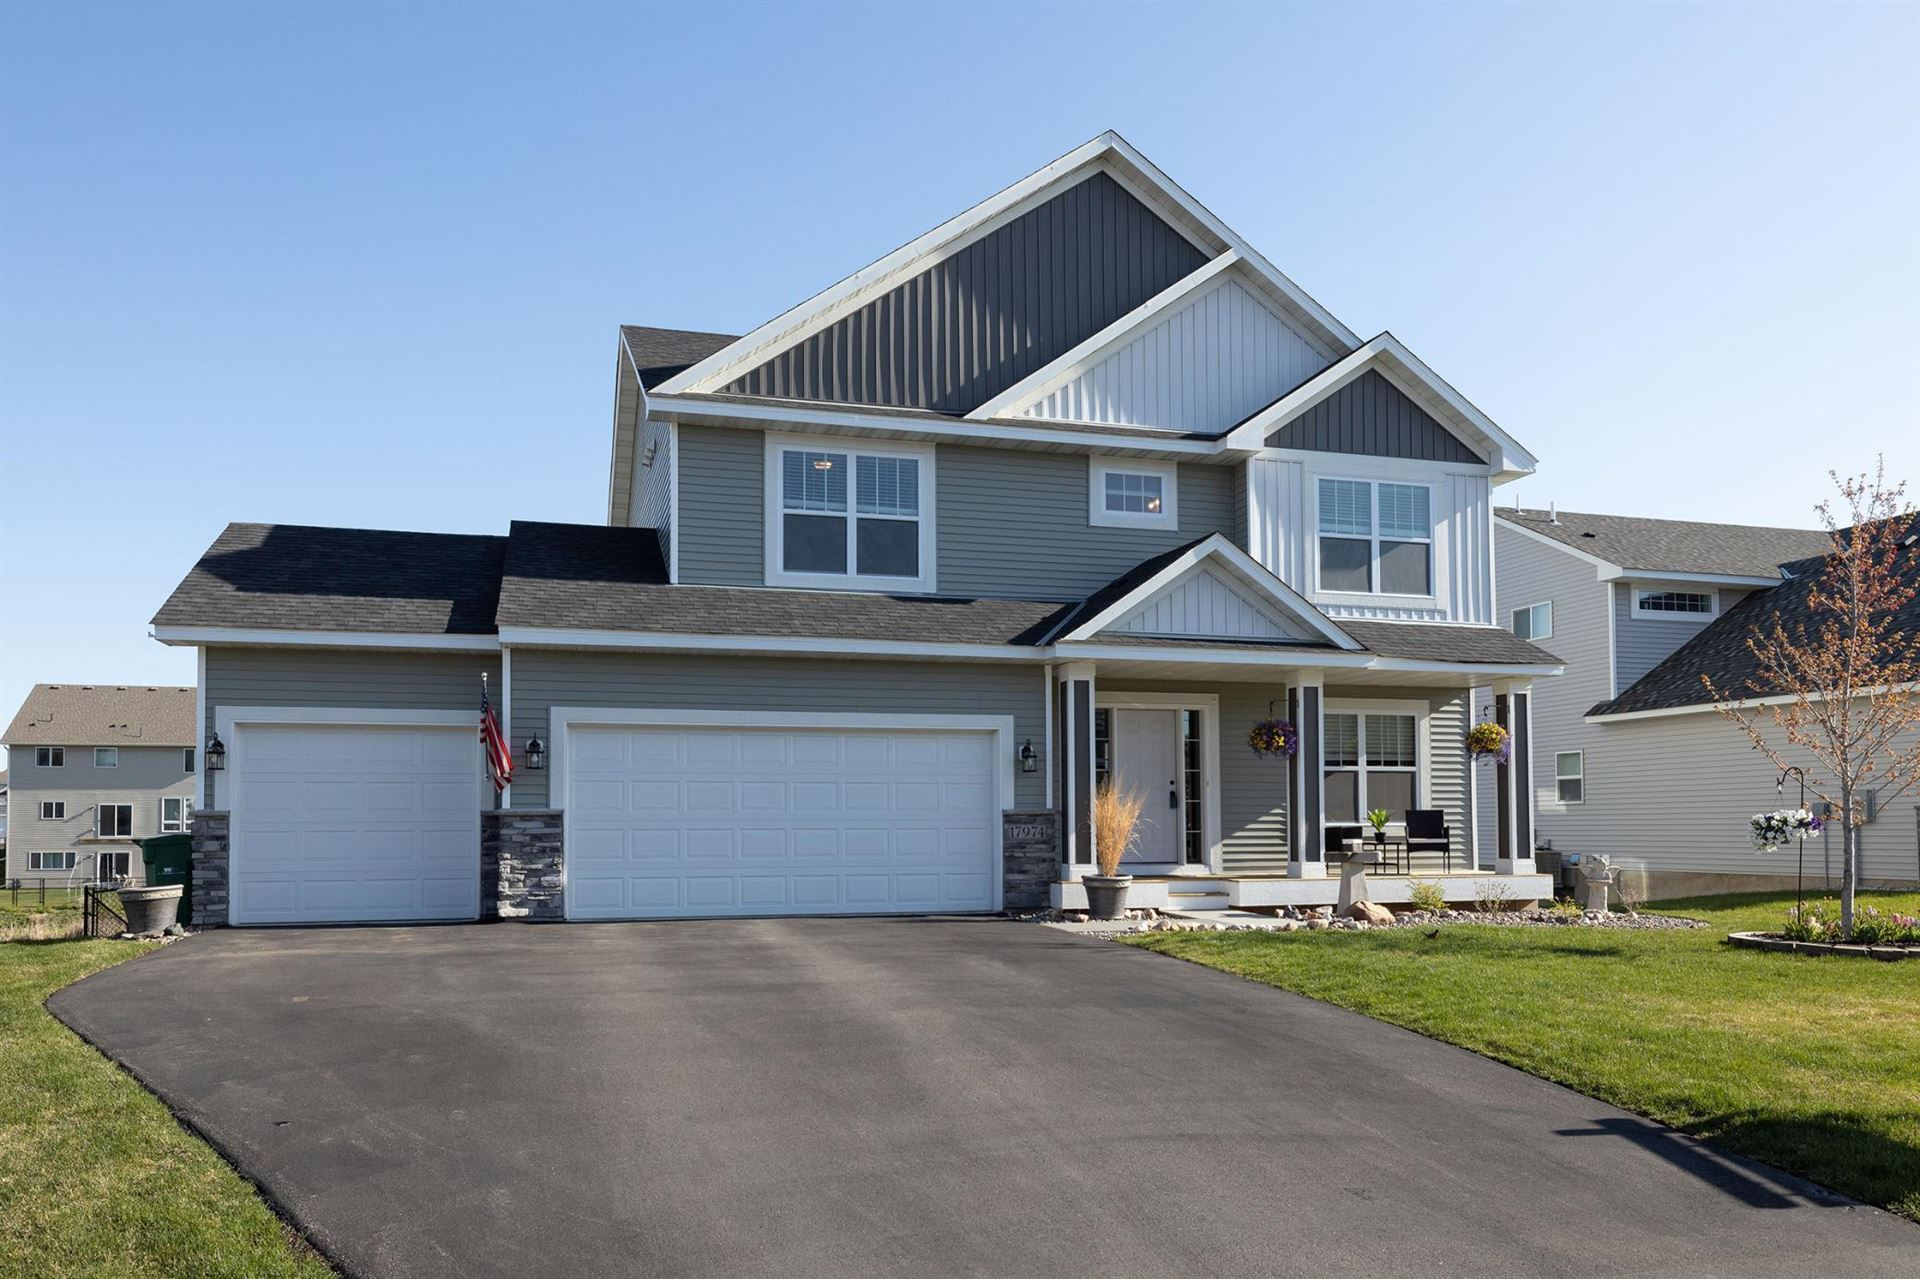 Photo of 17974 Equinox Avenue, Lakeville, MN 55044 (MLS # 5740900)